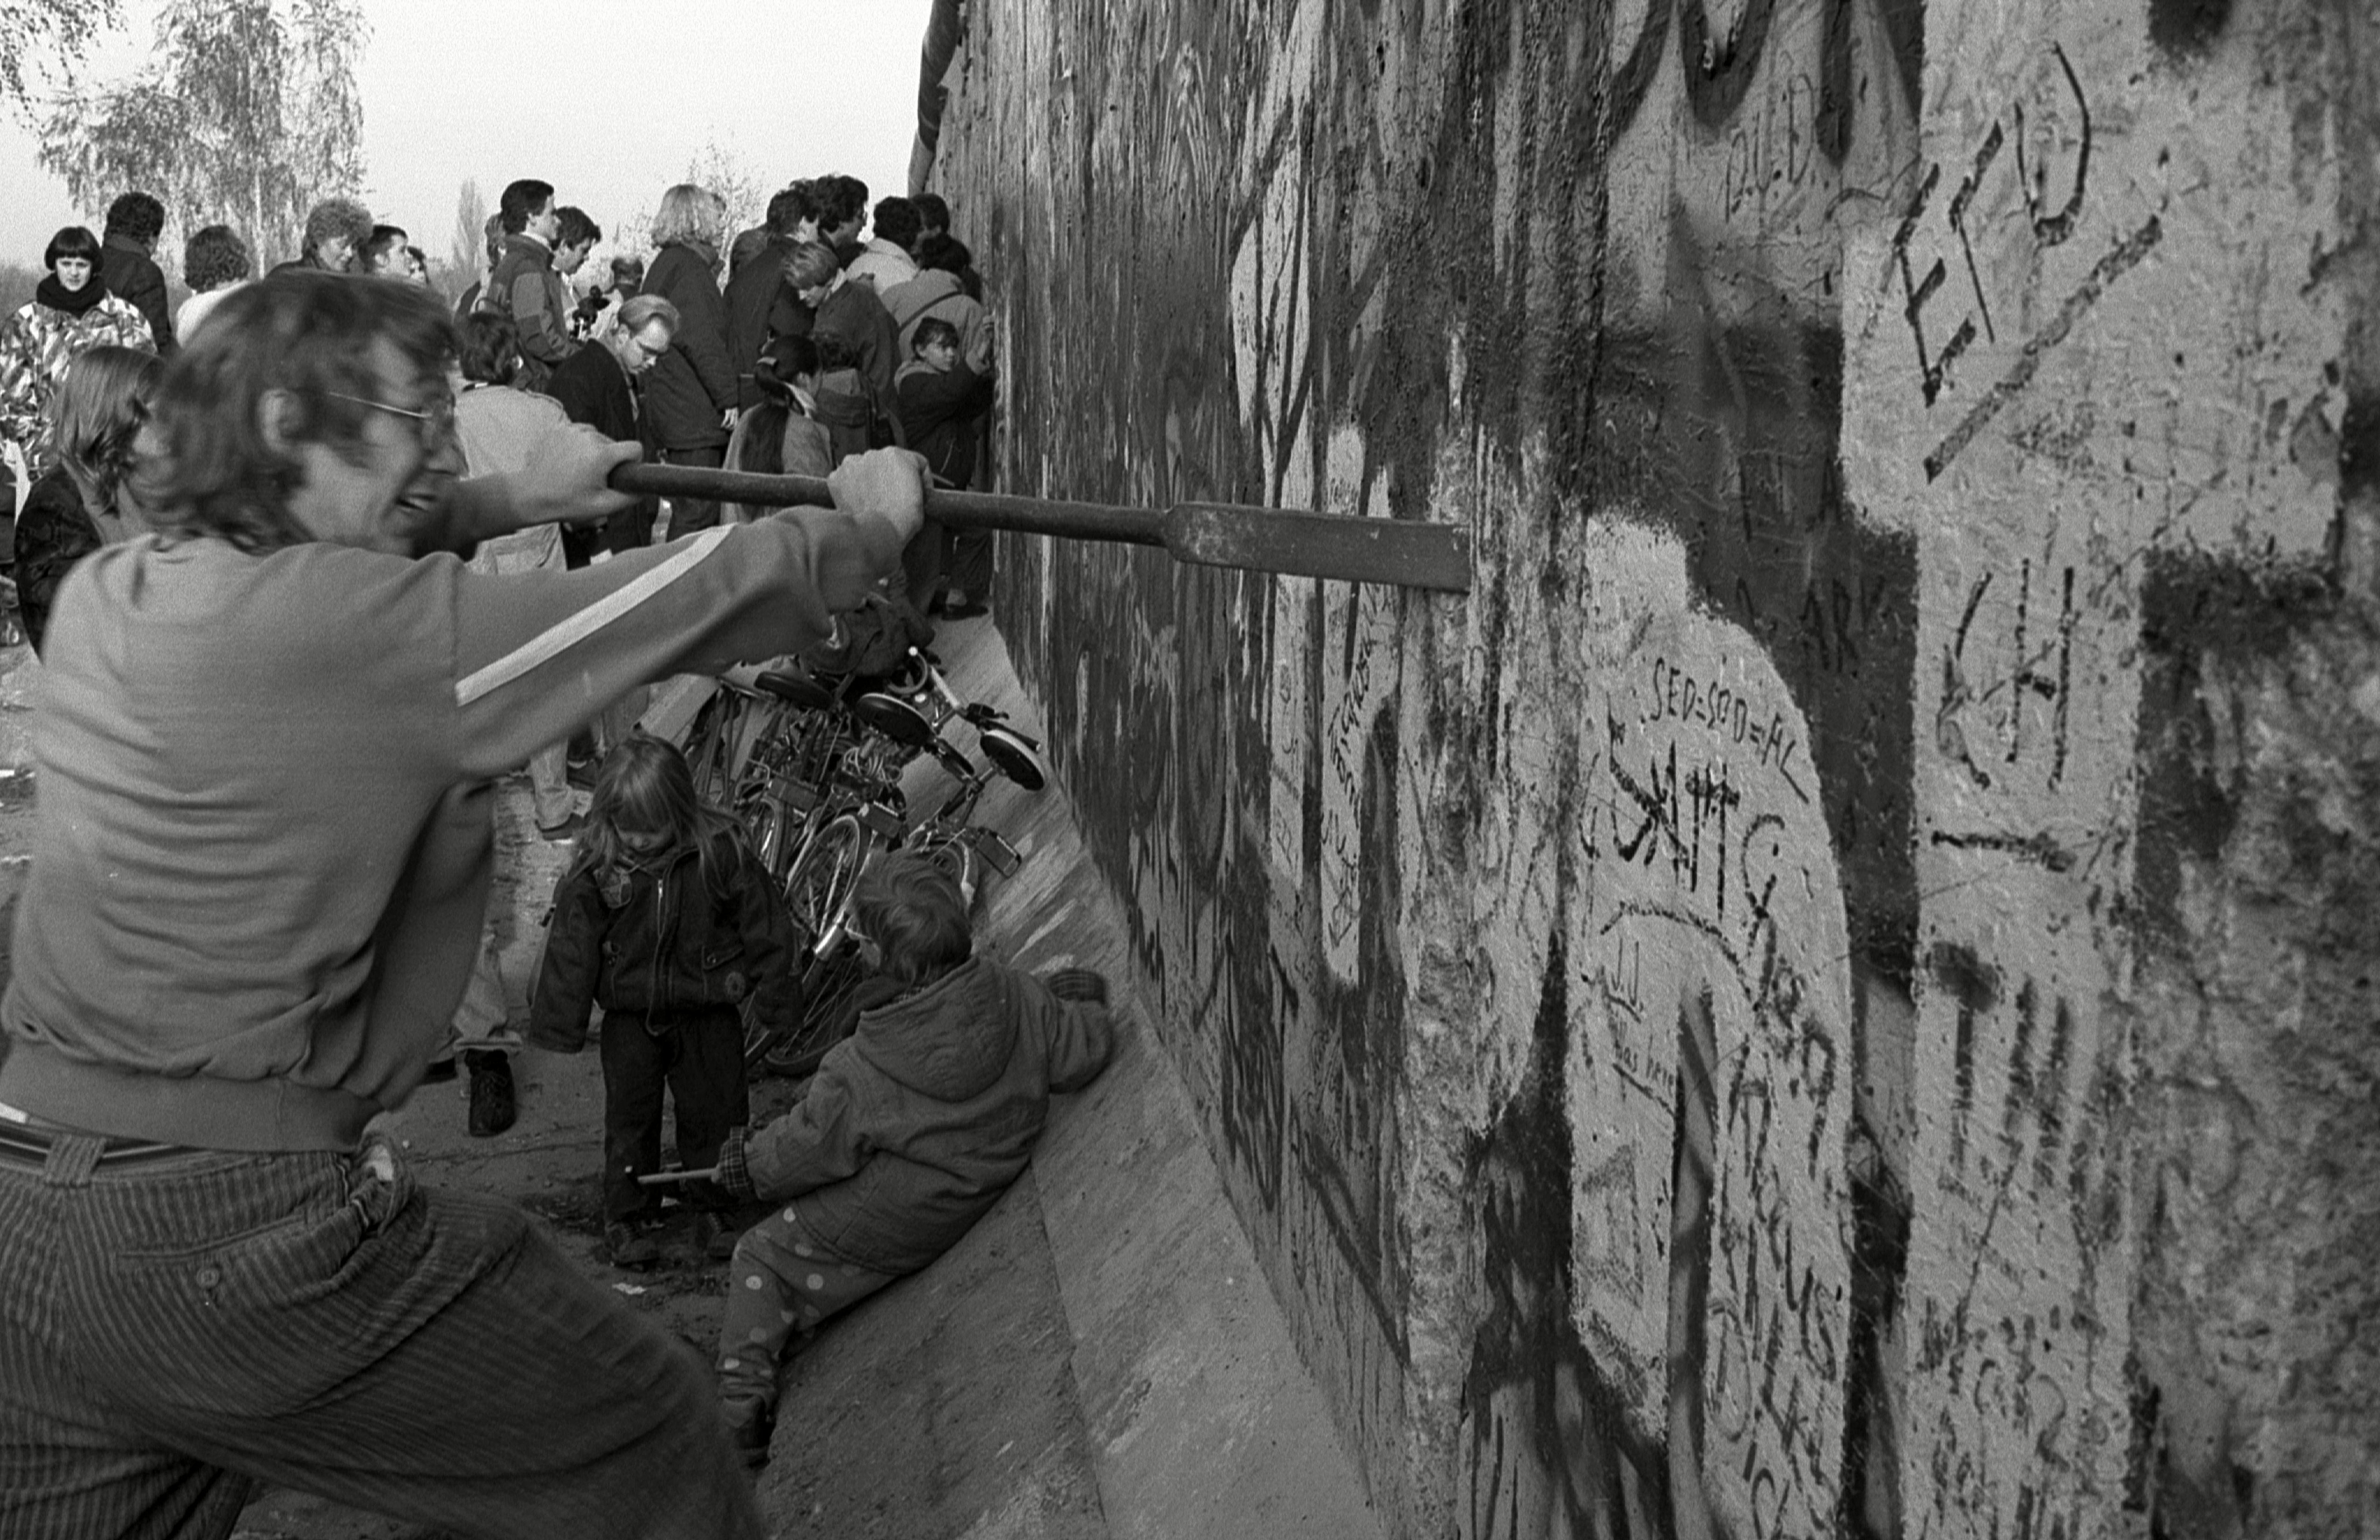 Mandatory Credit: Photo by Jochen Tack/imageBROKER/Shutterstock (4693796a) Fall of the Berlin Wall, Berlin, Germany, Europe VARIOUS